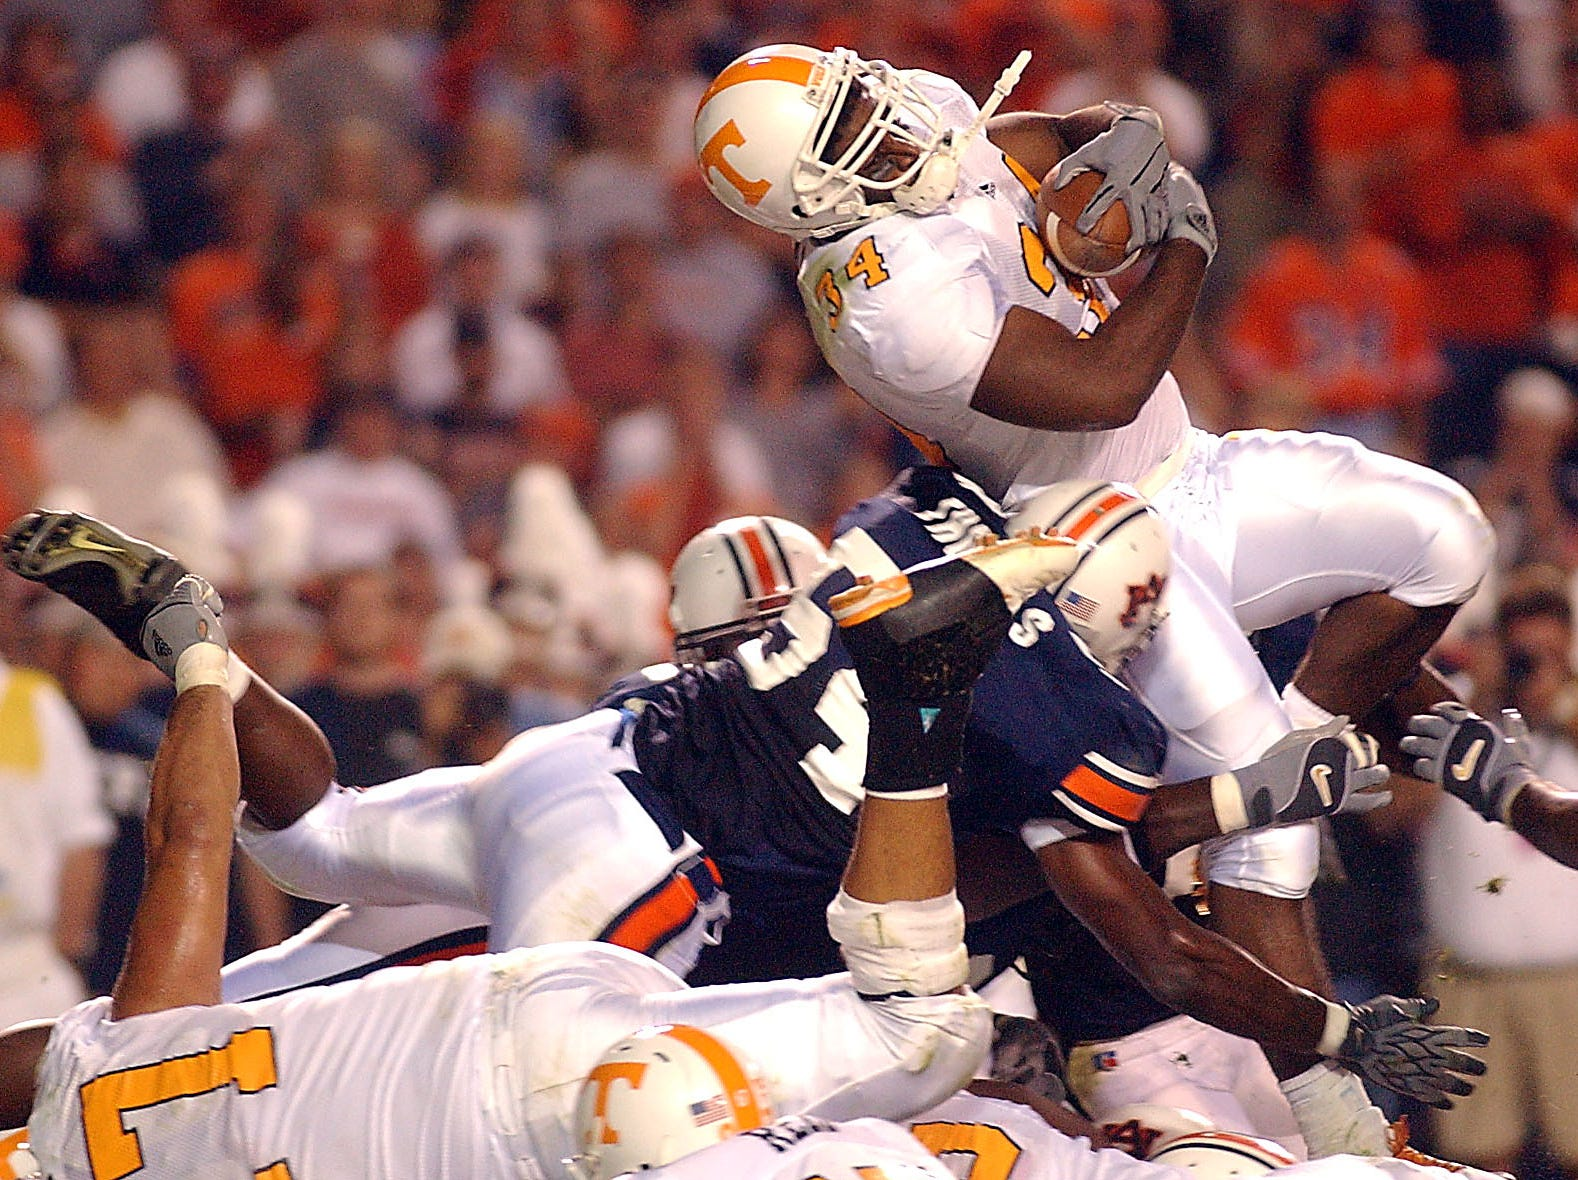 Tennessee's (34) Jabari Greer dives over the goal line for Tennessee's first touchdown at the end of the first half  Saturday night in Auburn, Alabama.    10/4/2003